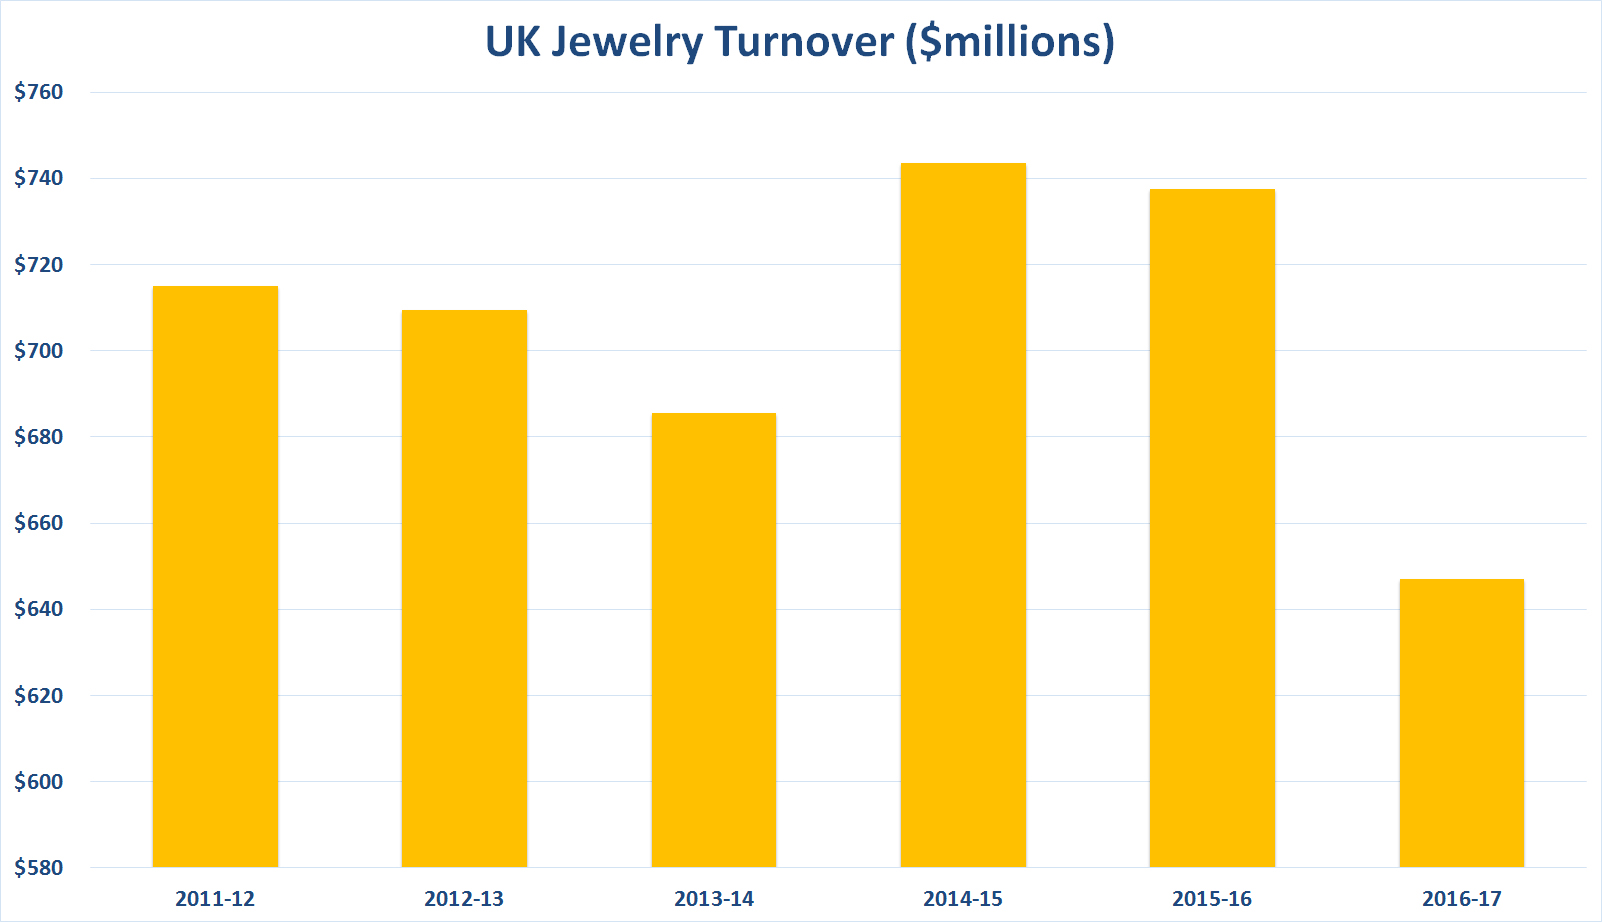 UK-Jewelry-Turnover